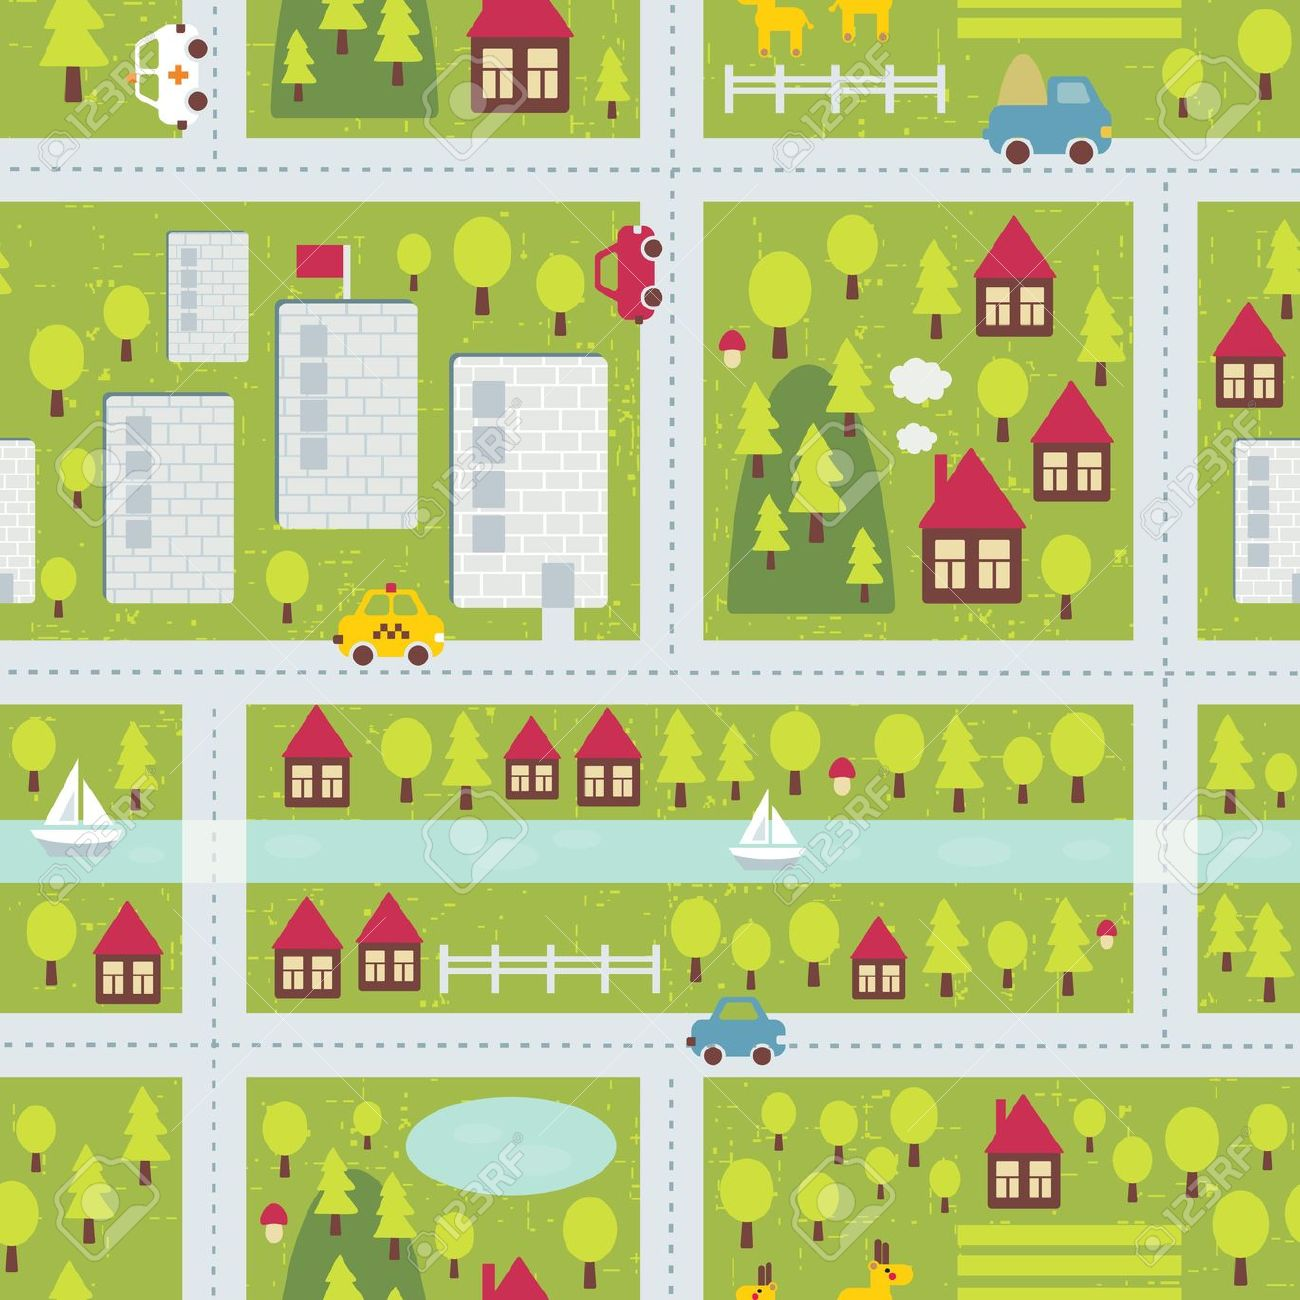 Townmap clipart picture stock Town map clipart image - Clip Art Library picture stock